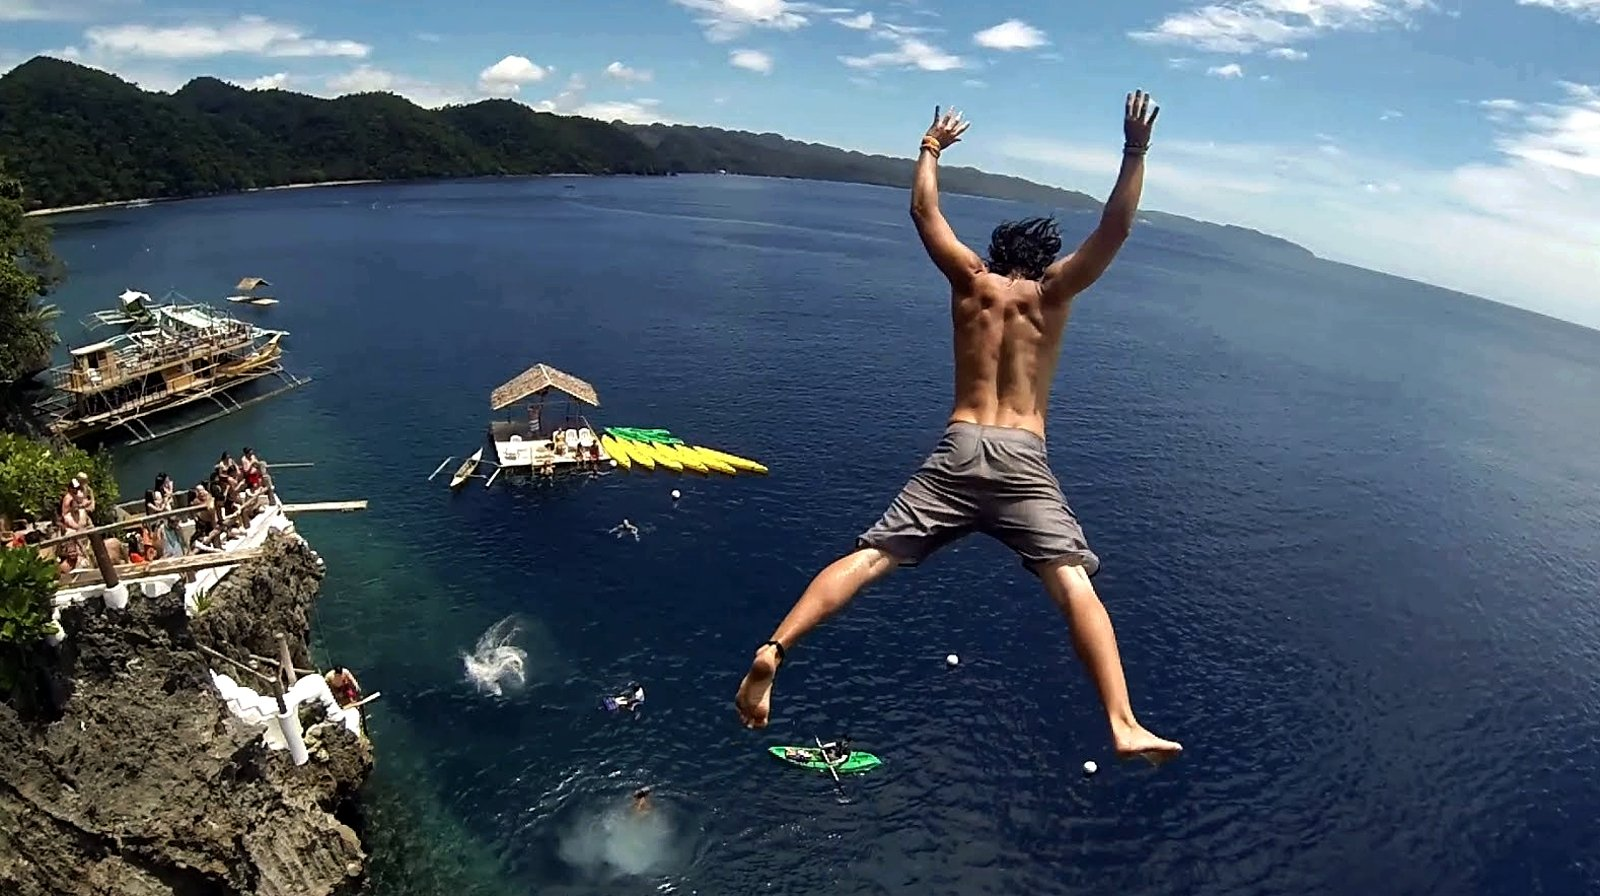 How to jump from a rock into the water on Panay